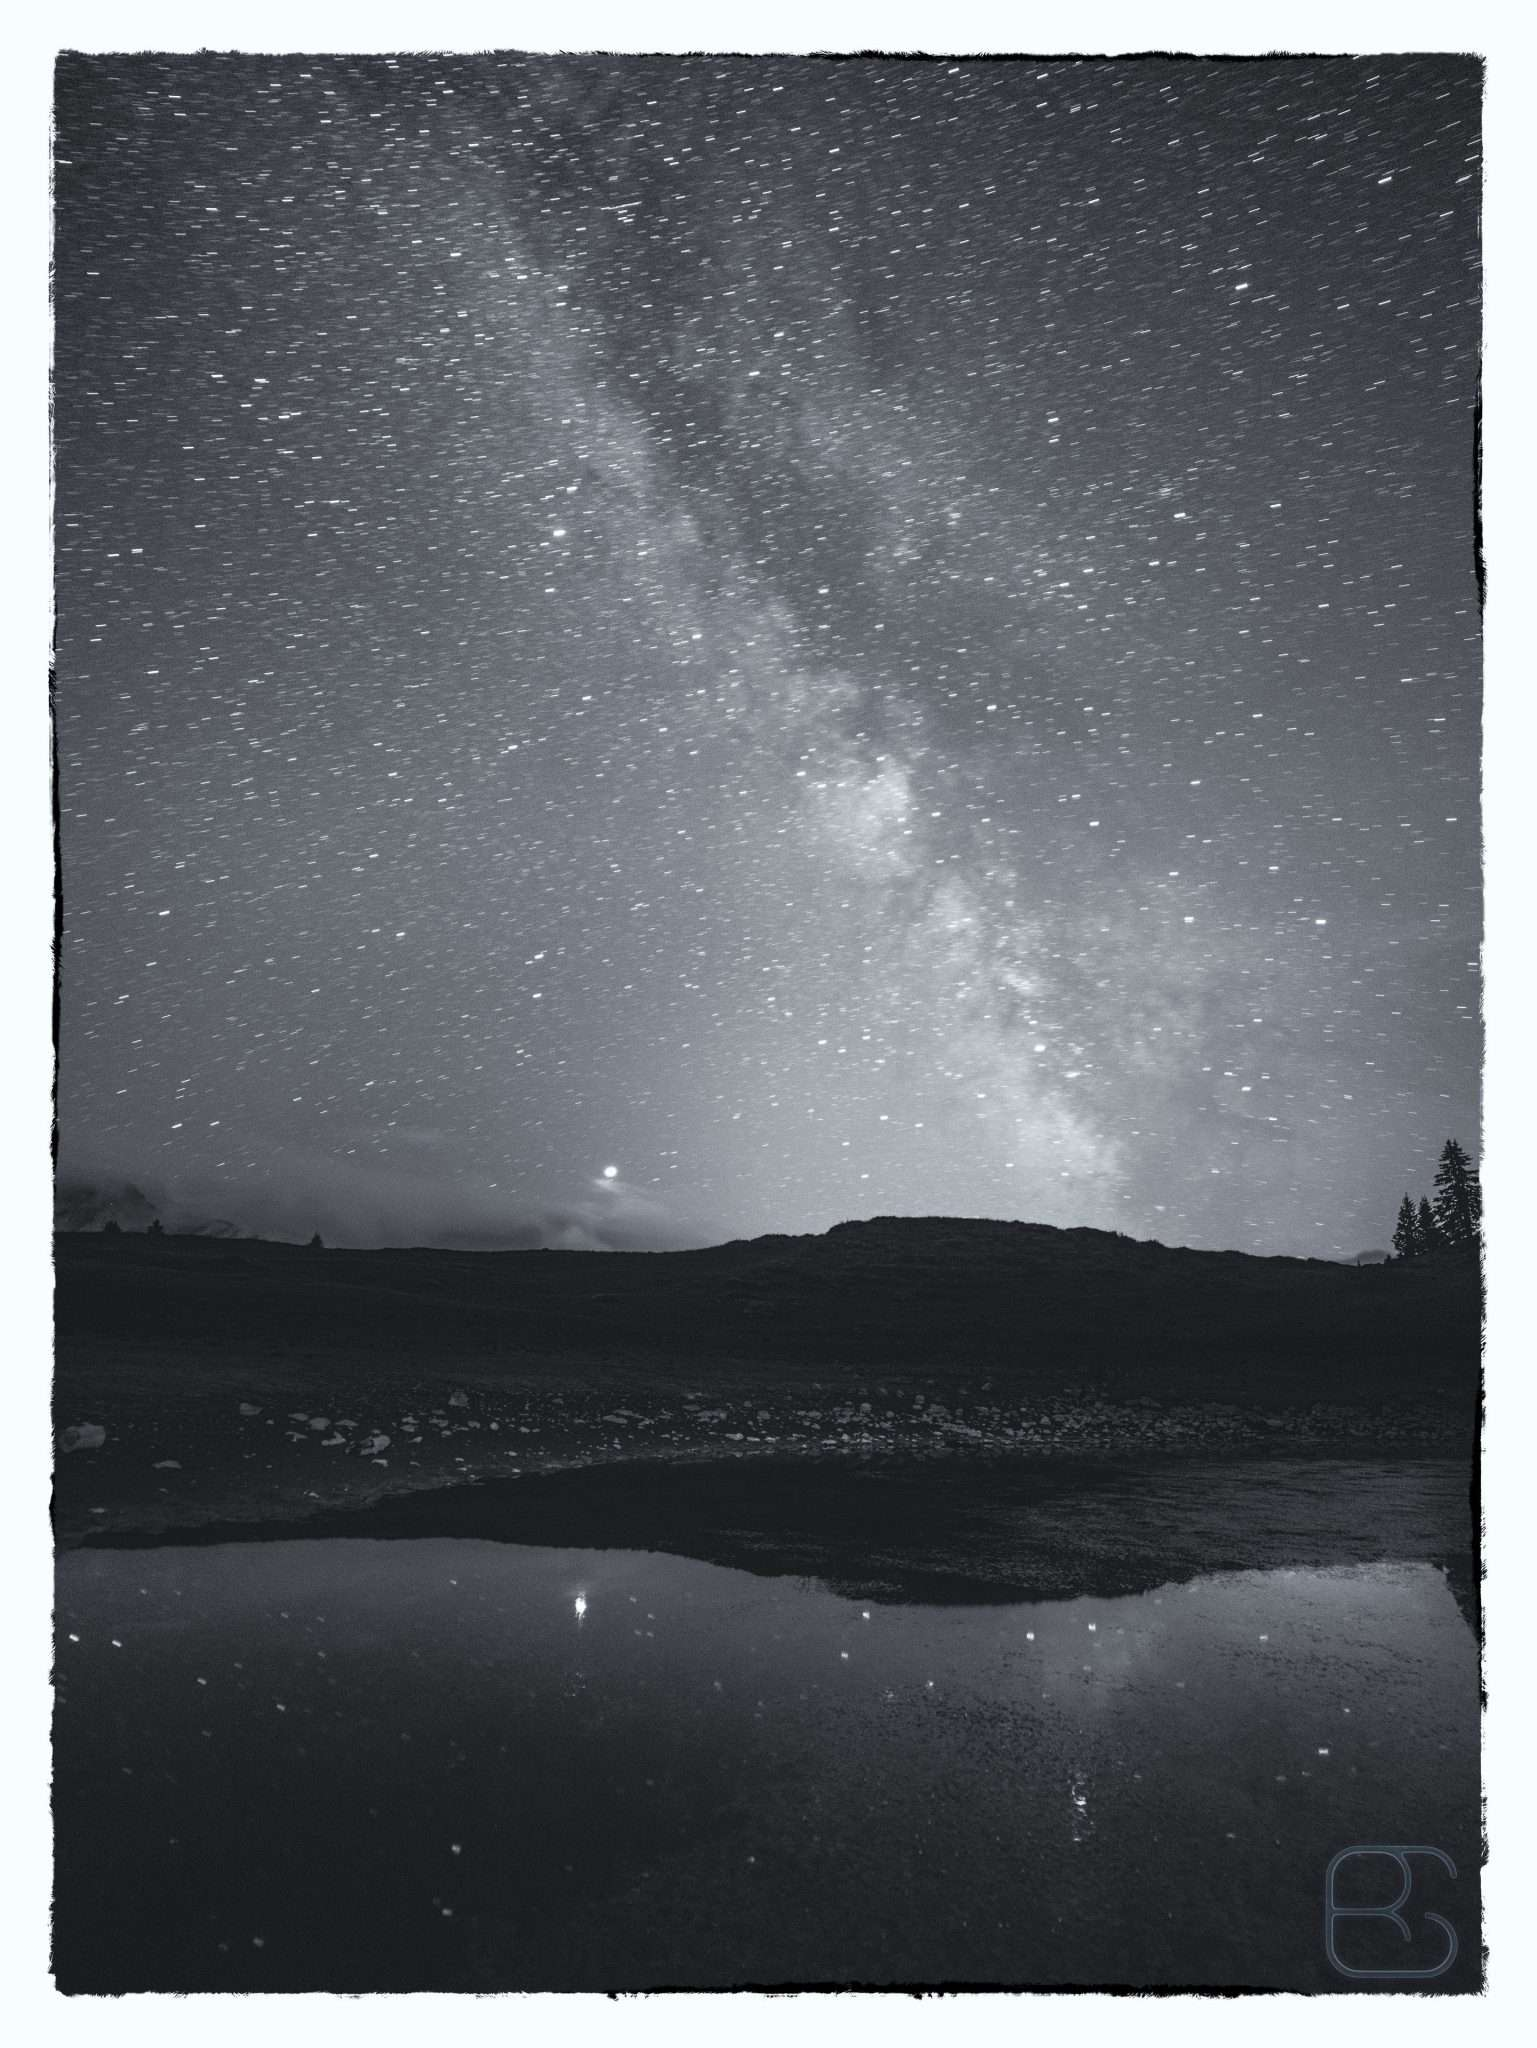 An other night at the Prätschsee